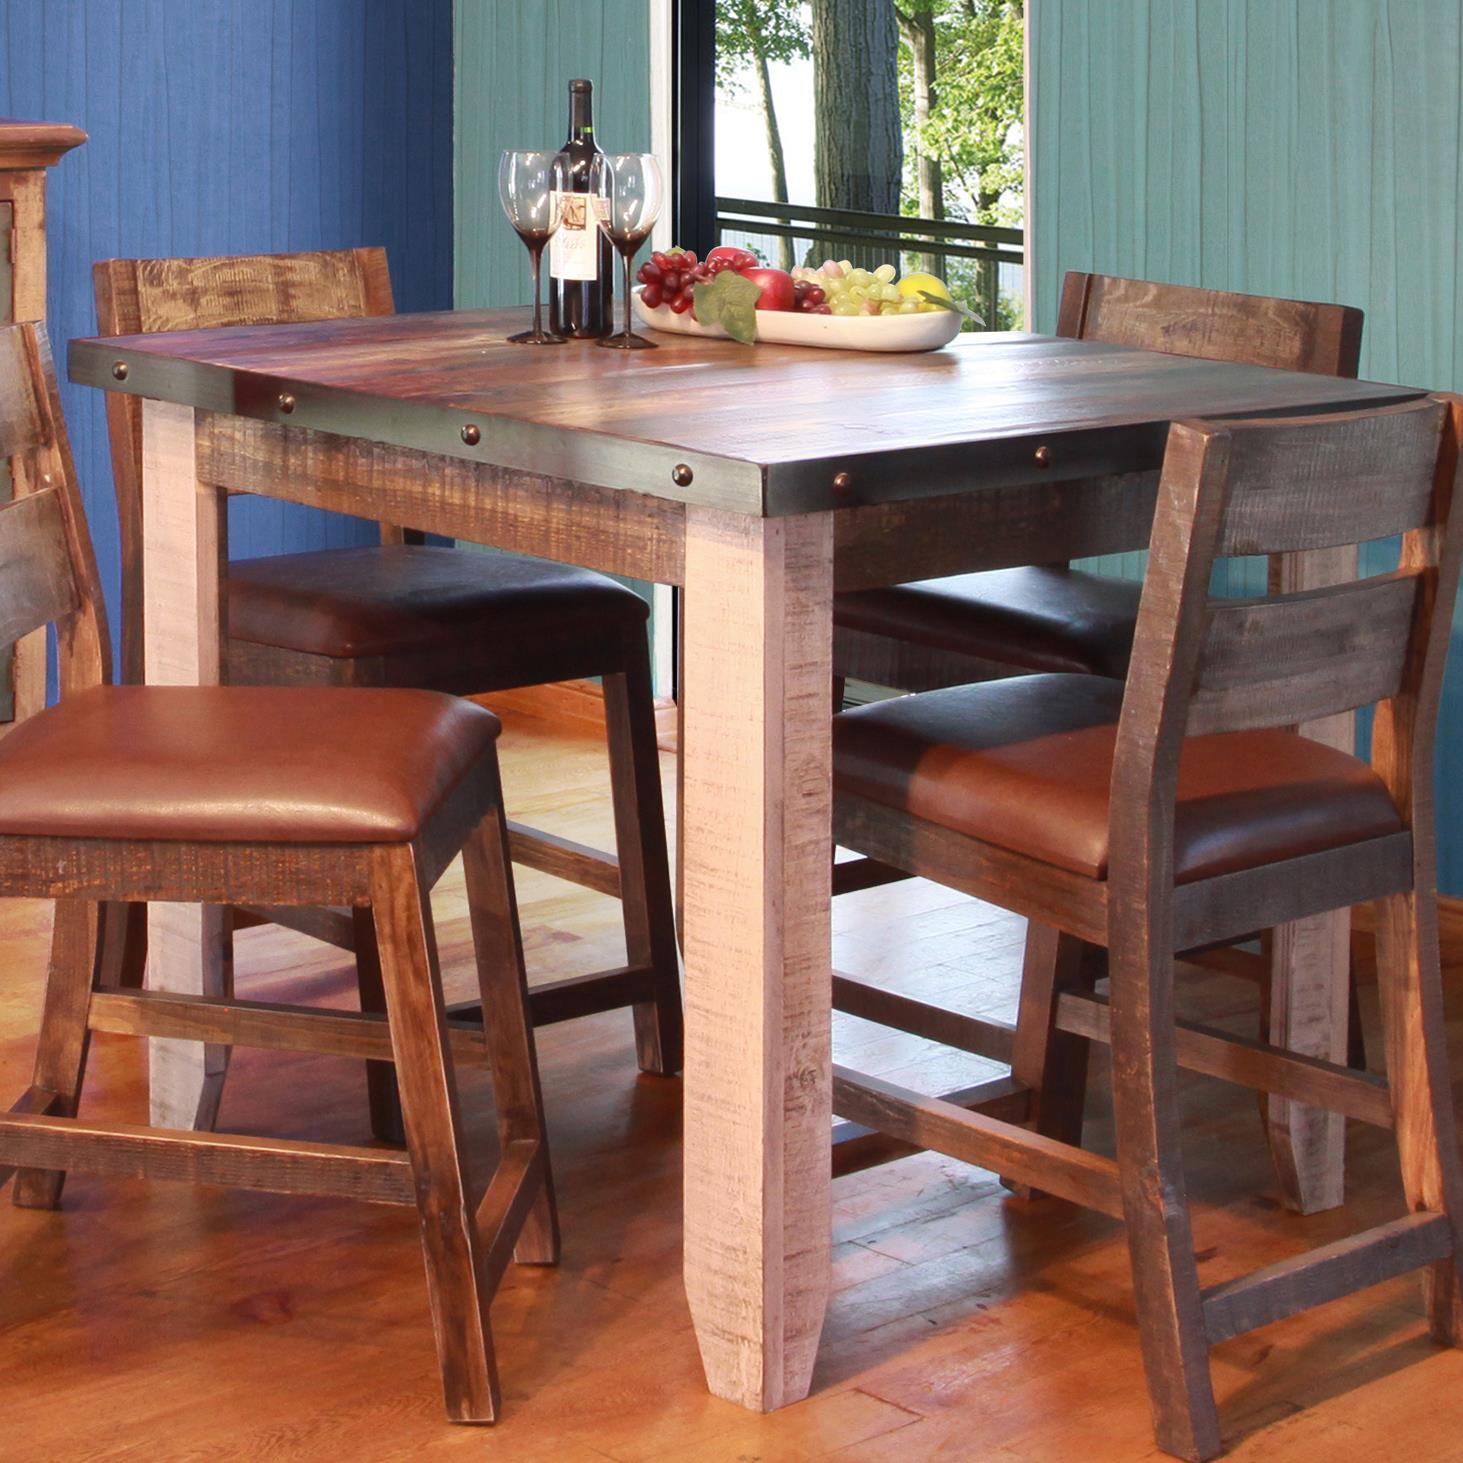 """900 Antique 42"""" Counter Height Dining Table by IFD International Furniture Direct at Suburban Furniture"""